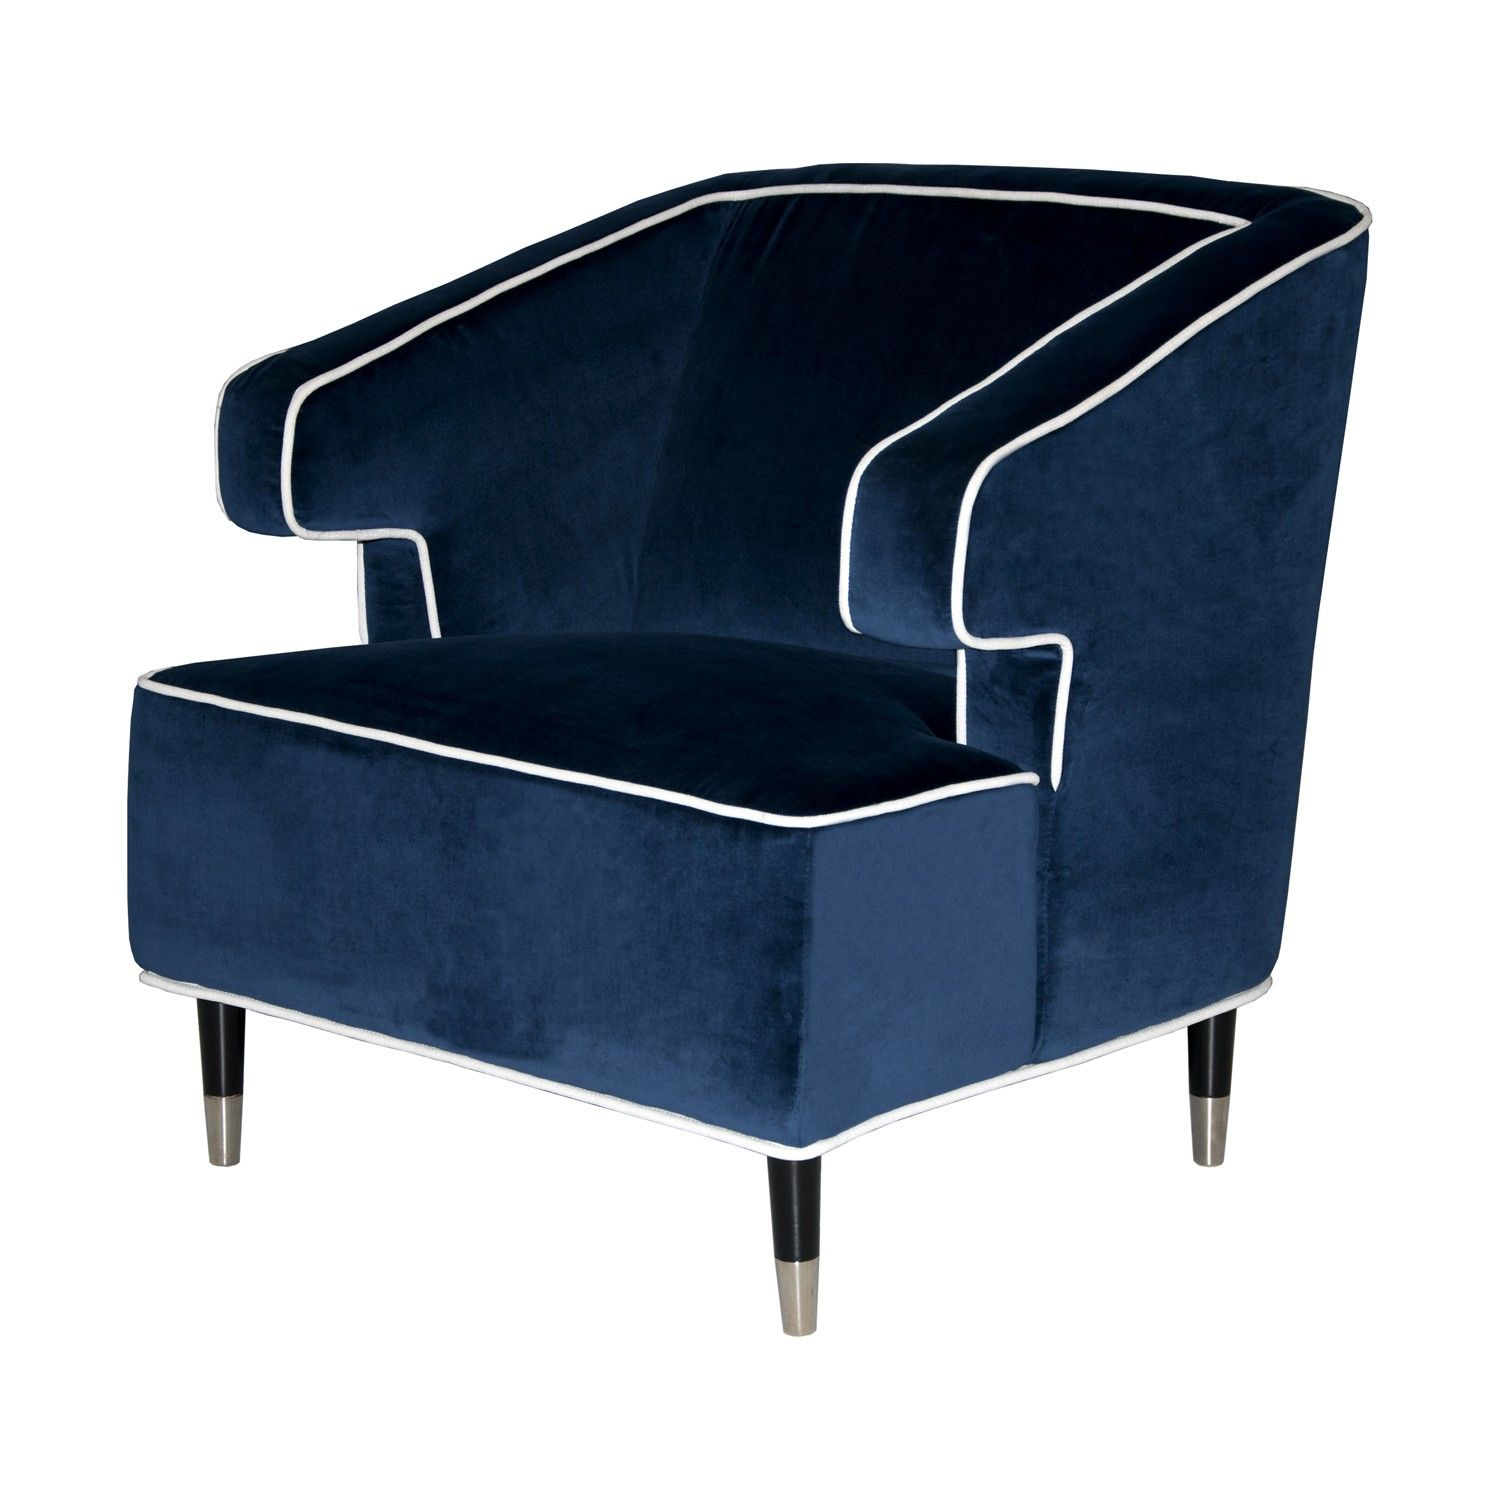 Velvet navy chair with piping, home, decor, chair, ottoman, navy ...